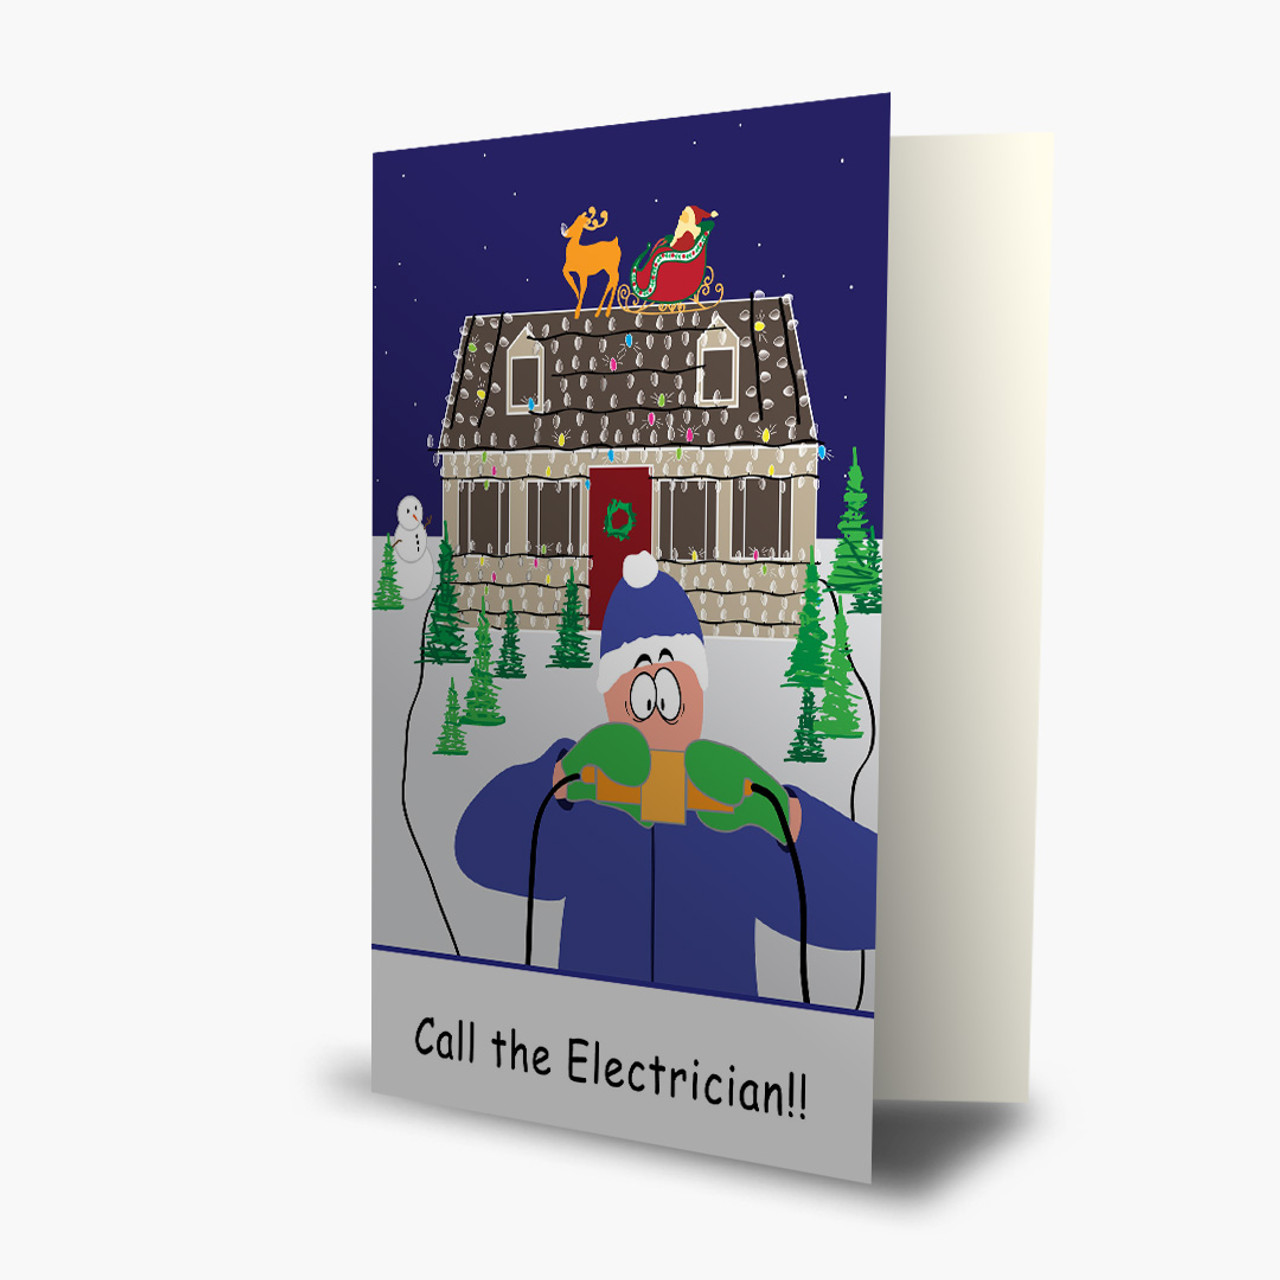 Call the Electrician!